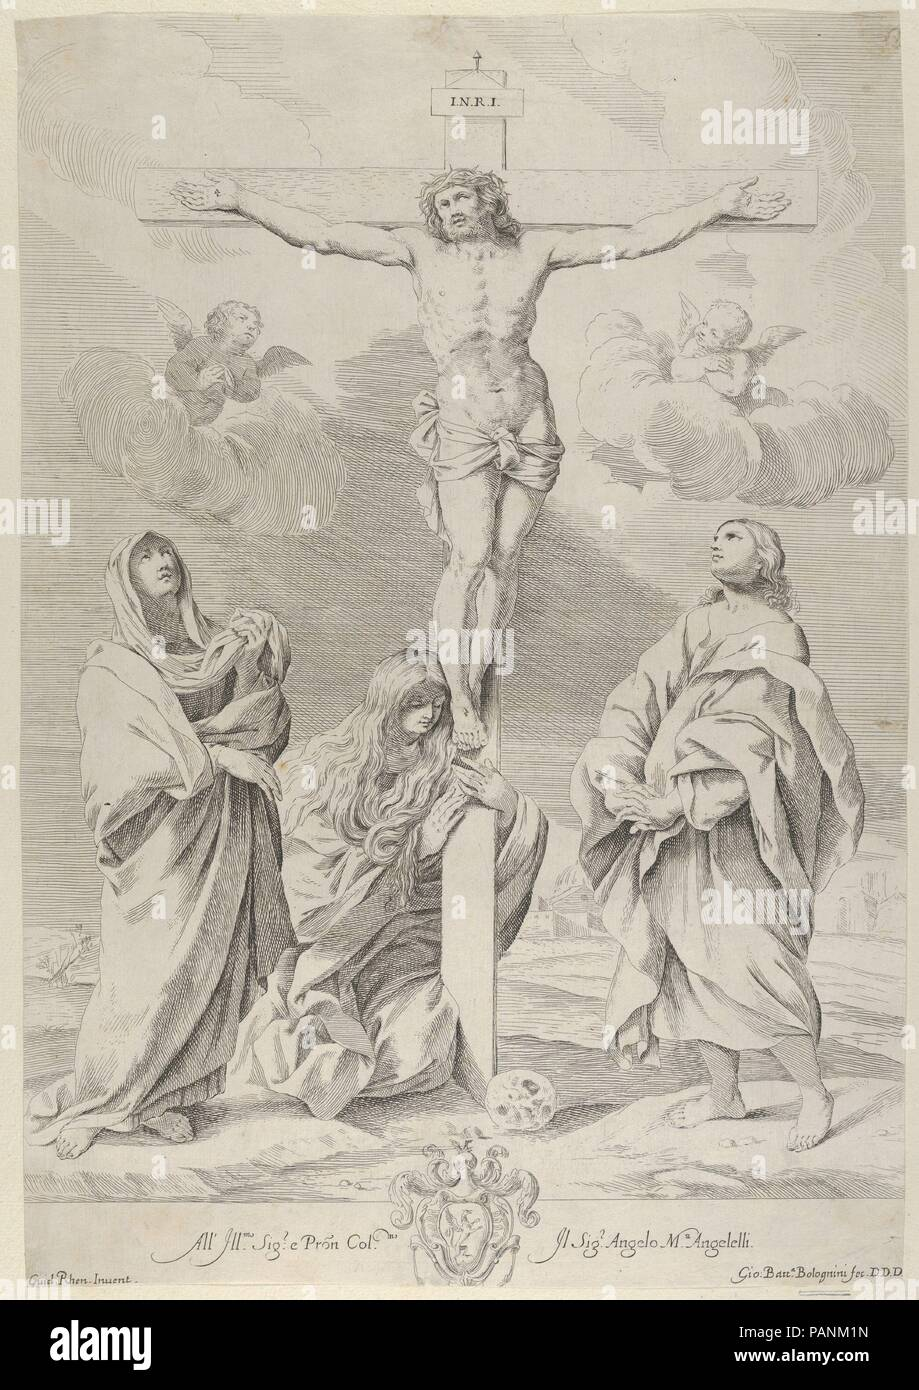 Christ on the cross, Saint John the Baptist at right, Mary Magdelene and the Virgin at left, after Reni. Artist: After Guido Reni (Italian, Bologna 1575-1642 Bologna); Engraved by Gian Battista Bolognini (Italian, Bologna 1611-1688 Bologna). Dimensions: Sheet (Trimmed): 16 5/16 × 11 1/4 in. (41.4 × 28.6 cm). Date: ca. 1640-88.  After a painting by Reni which at the time was in the church of San Domenico in Bologna.  Verso is not visible as print is laid to another sheet of paper. Museum: Metropolitan Museum of Art, New York, USA. - Stock Image